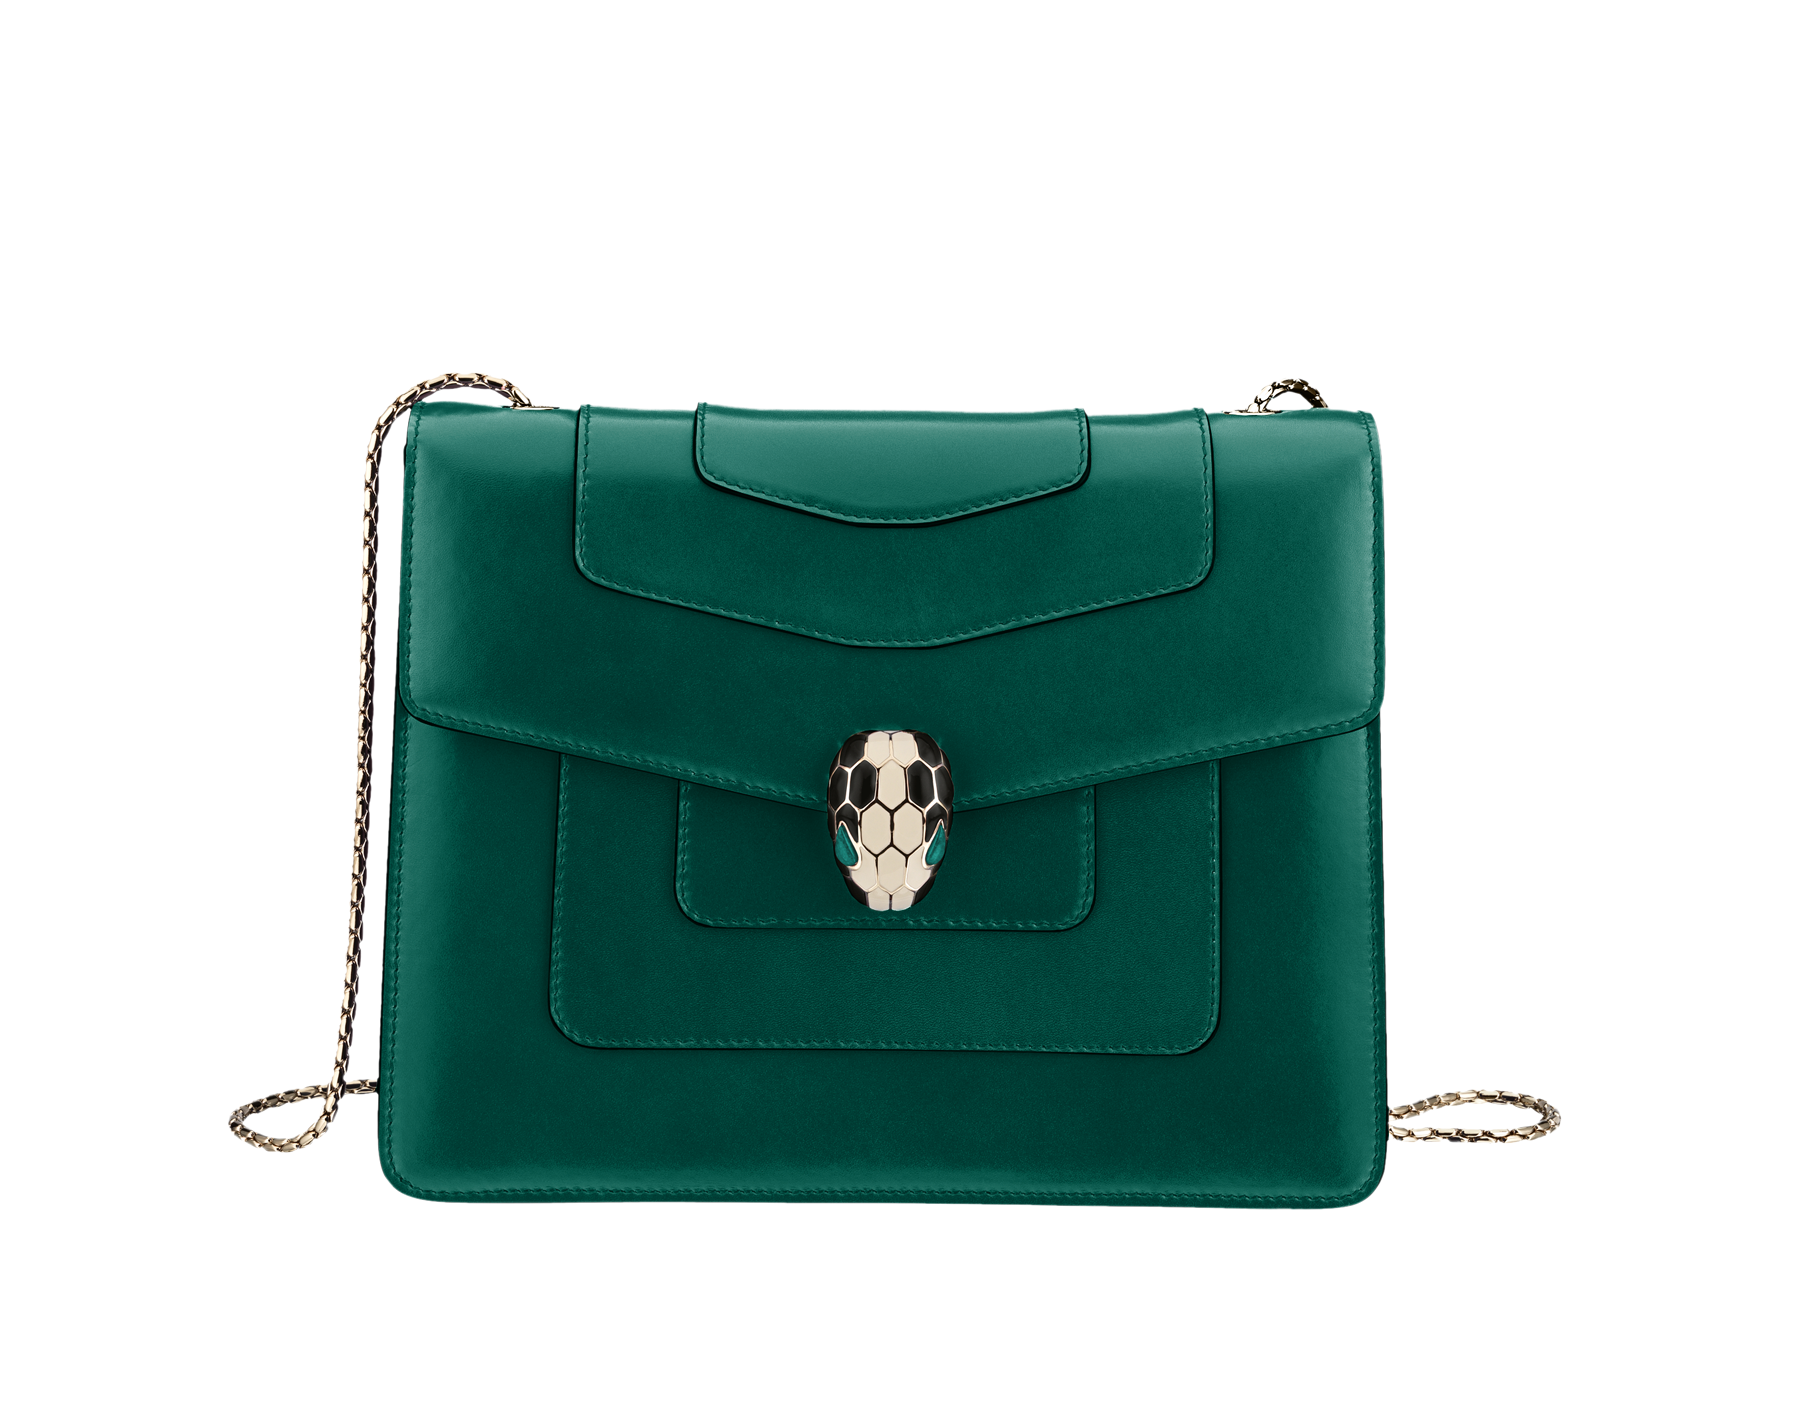 serpenti forever designer shoulder bag 34566e discover italian jewelry and other luxury